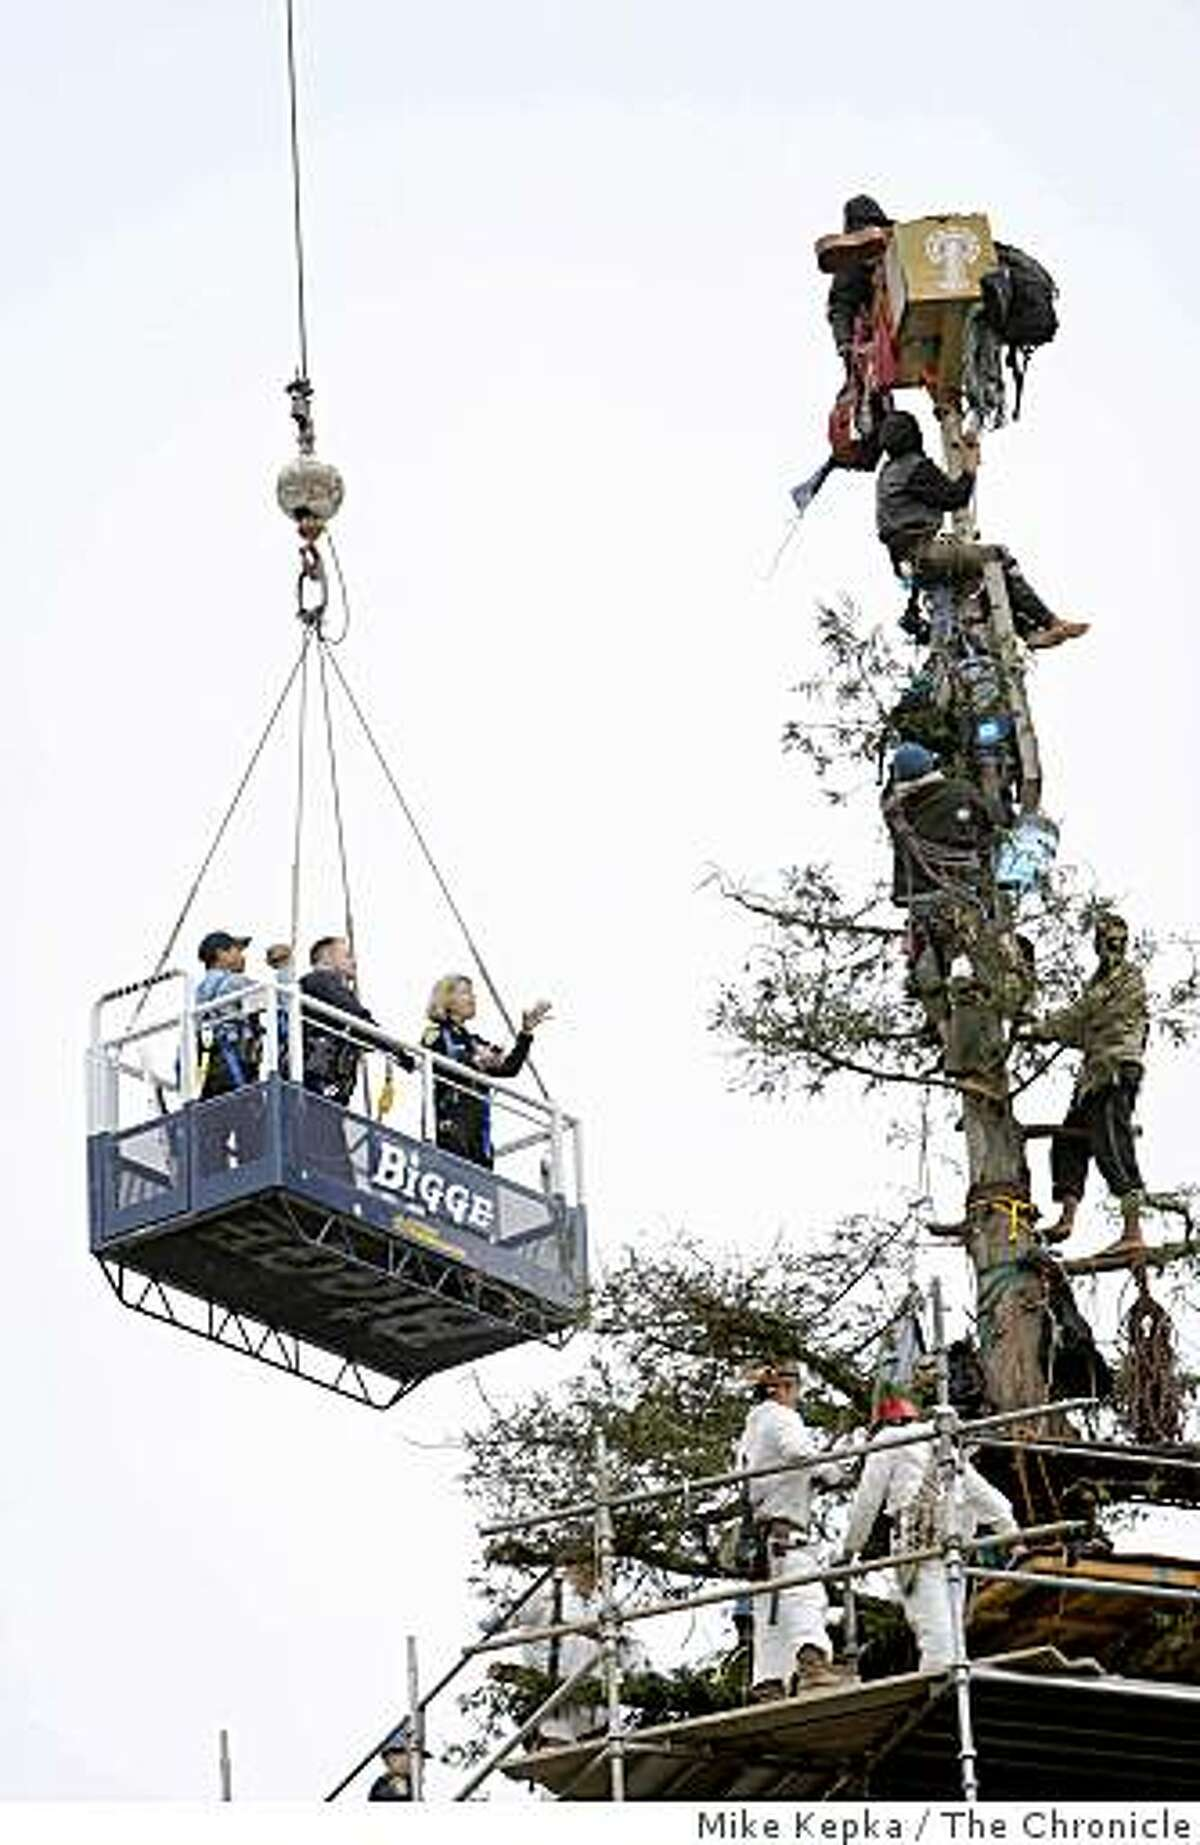 (NYT67) BERKELEY, Calif. -- Sept. 9, 2008 -- CALIF-TREESITTER-STANDOFF -- Authorities negotiate with tree-sitters atop a tree on the campus of the University of California in Berkeley, Calif., Tuesday, Sept. 9, 2008. Four tree-sitters climbed down from the 80-foot-tall redwood tree near Memorial Stadium Tuesday afternoon, bringing a peaceful ending to a nearly 2-year-long standoff that attracted national attention. (Mike Kepka/The San Francisco Chronicle) MANDATORY CREDIT FOR PHOTOG AND SF CHRONICLE/NO SALES-MAGS OUT